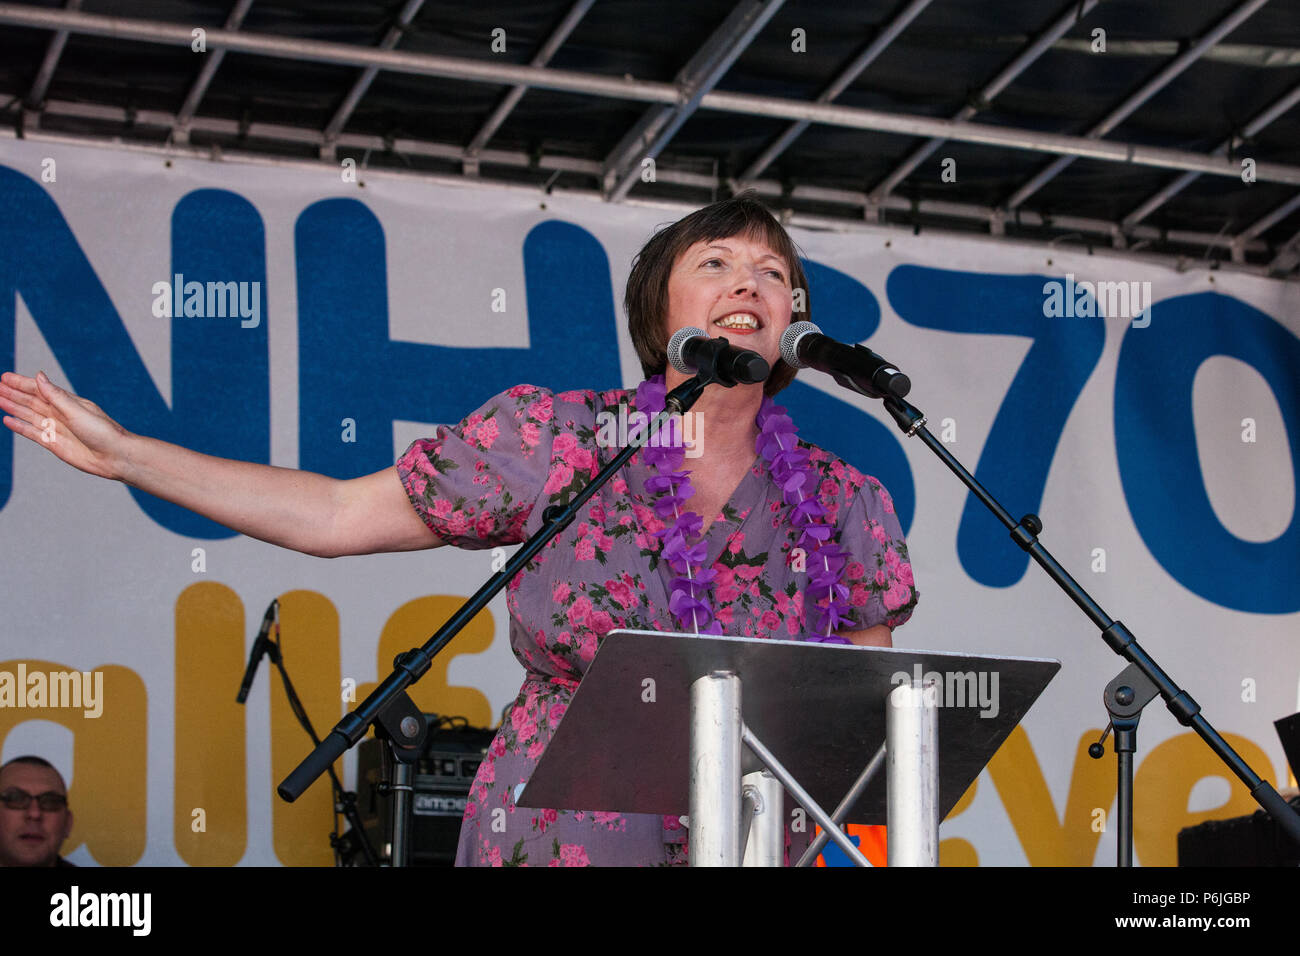 London, UK. 30th June 2018. Frances O'Grady, General Secretary of the Trades Union Congress, addresses thousands of people, including many nurses, doctors and health workers, taking part in a rally to mark the 70th birthday of the National Health Service (NHS) and to demand an end to cuts to and privatisation of public services. The event was organised by the People's Assembly Against Austerity, Health Campaigns Together, the TUC and eleven other health trade unions. Credit: Mark Kerrison/Alamy Live News - Stock Image